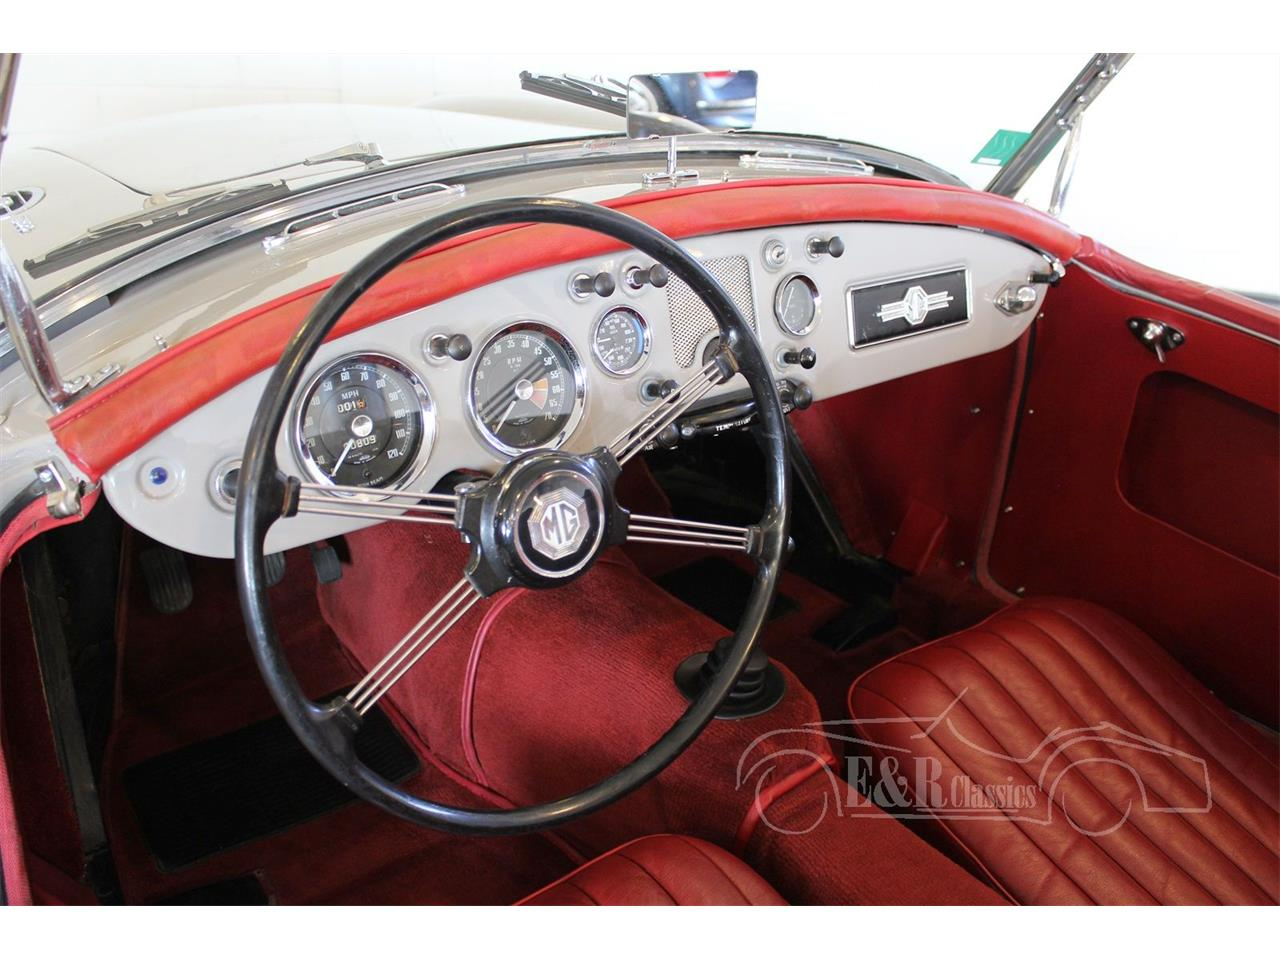 Large Picture of 1959 MG MGA - $51,000.00 Offered by E & R Classics - M8JW